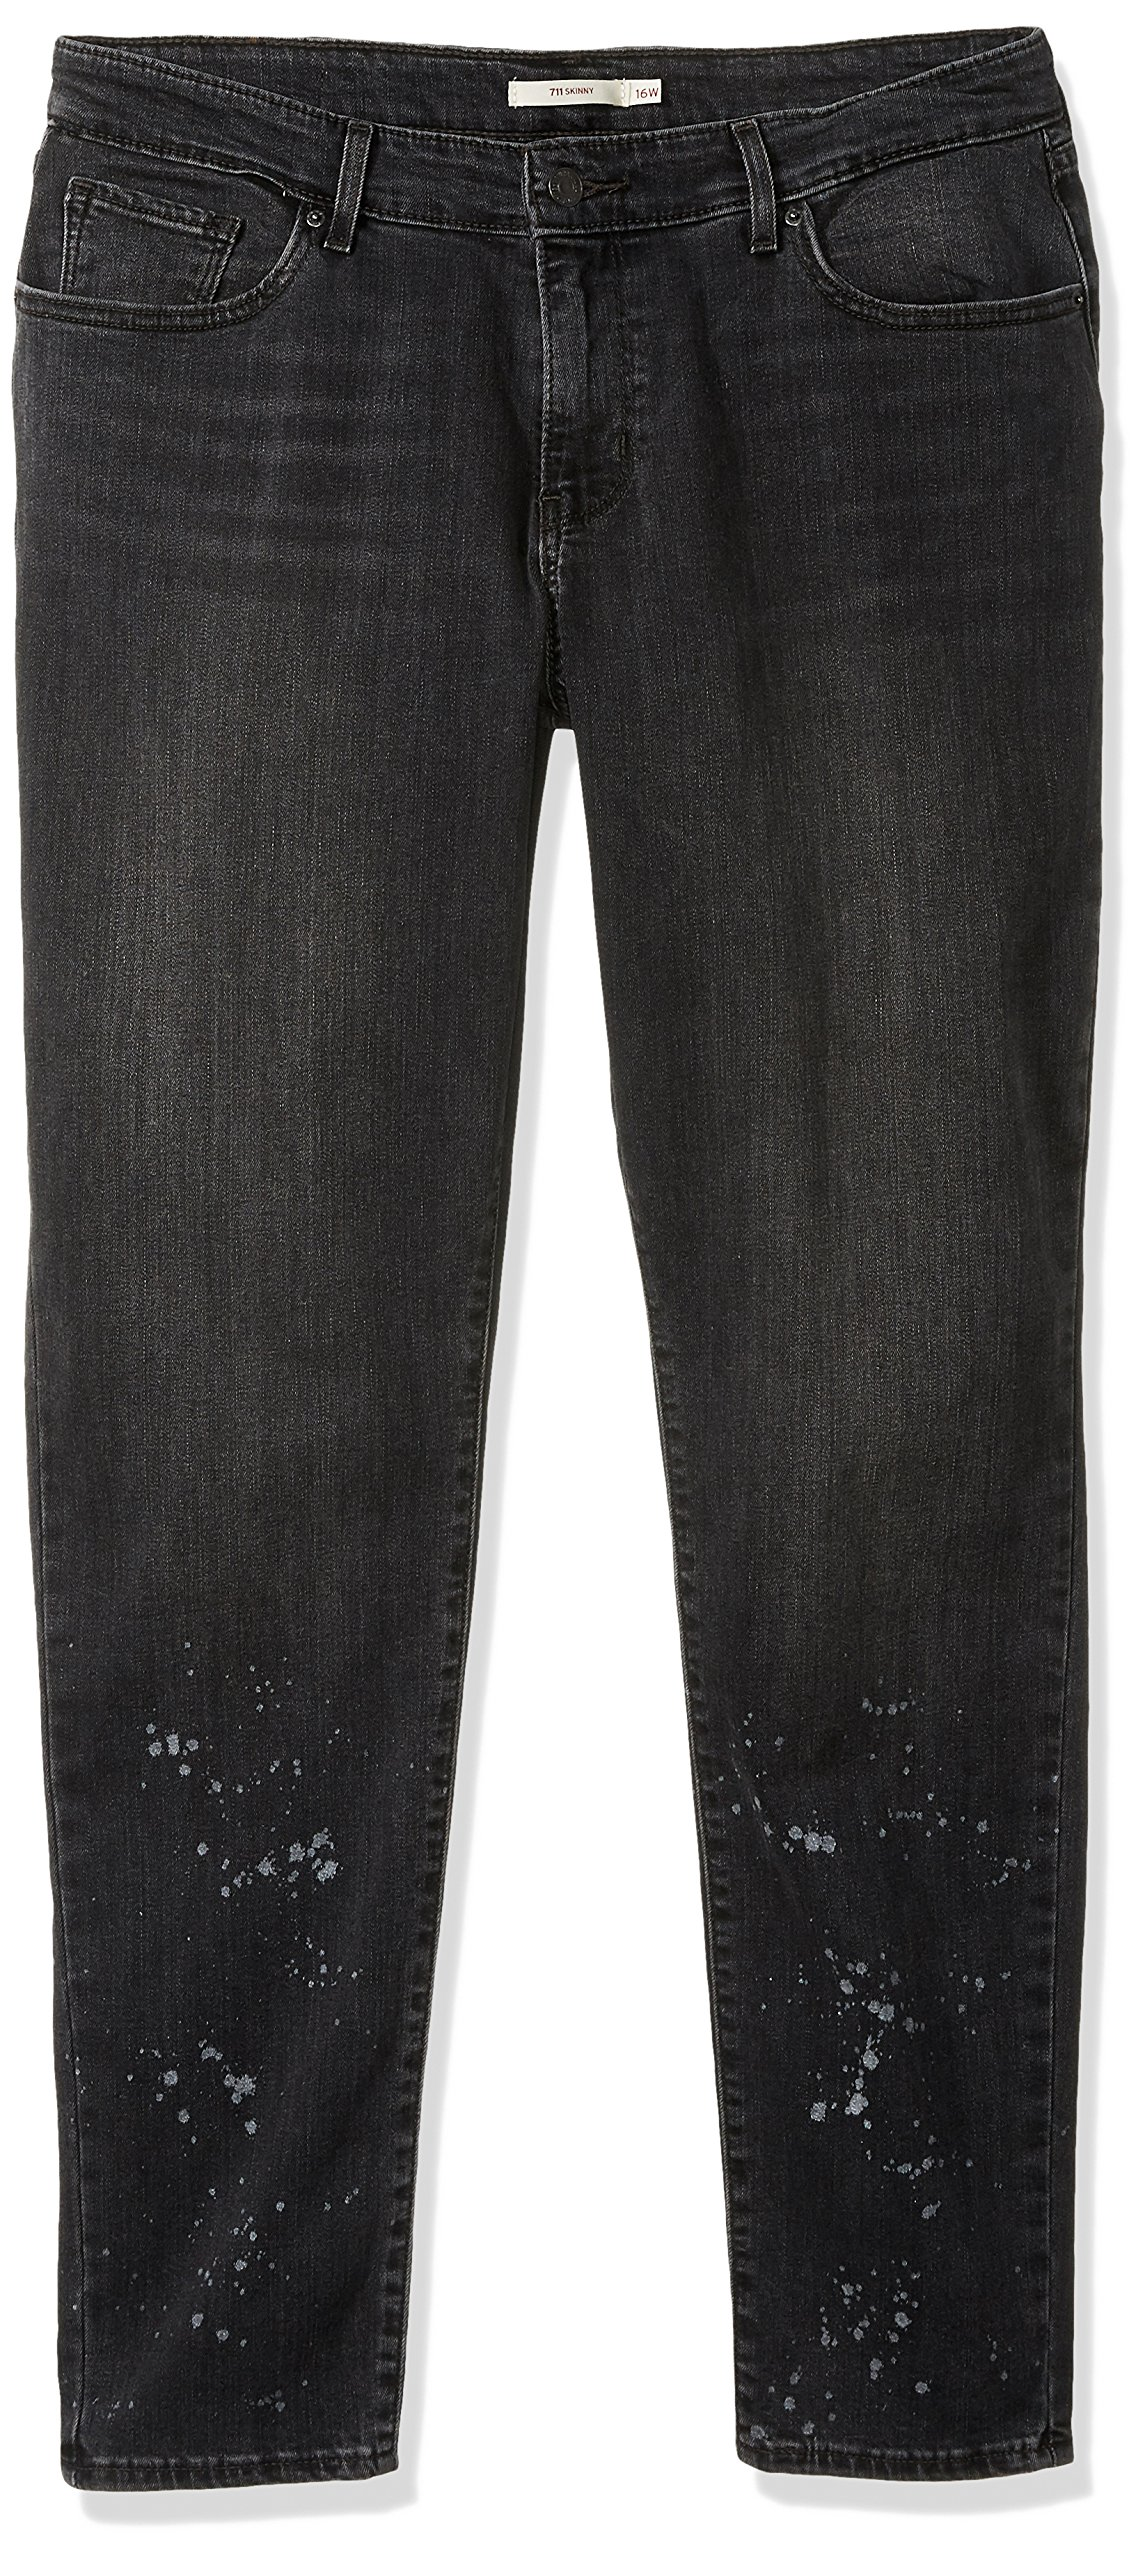 Levi's Women's 711 Skinny Jeans, on The Run, 36 (US 16) R